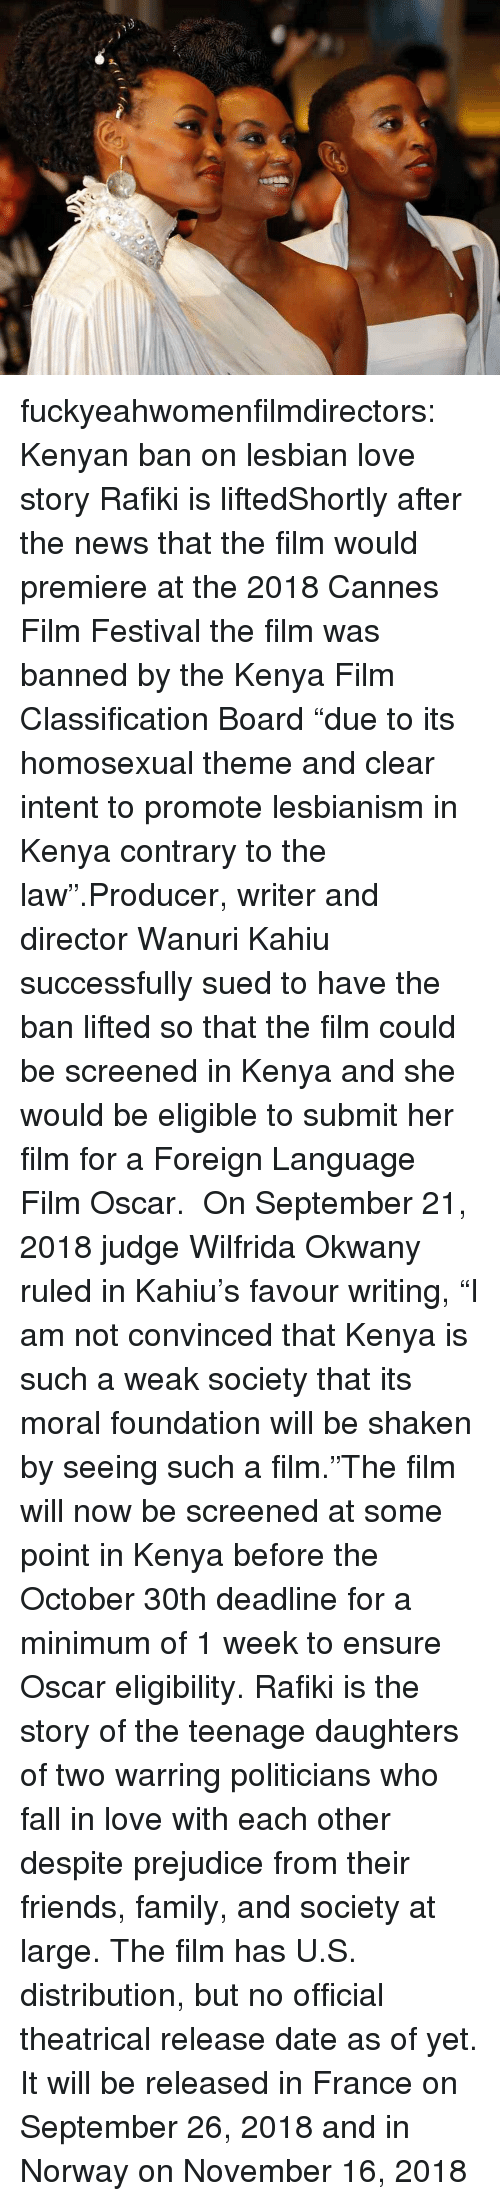 "Fall, Family, and Friends: fuckyeahwomenfilmdirectors:  Kenyan ban on lesbian love story Rafiki is liftedShortly after the news that the film would premiere at the 2018 Cannes Film Festival the film was banned by the Kenya Film Classification Board ""due to its homosexual theme and clear intent to promote lesbianism in Kenya contrary to the law"".Producer, writer and director Wanuri Kahiu successfully sued to have the ban lifted so that the film could be screened in Kenya and she would be eligible to submit her film for a Foreign Language Film Oscar.  On September 21, 2018 judge Wilfrida Okwany ruled in Kahiu's favour writing, ""I am not convinced that Kenya is such a weak society that its moral foundation will be shaken by seeing such a film.""The film will now be screened at some point in Kenya before the October 30th deadline for a minimum of 1 week to ensure Oscar eligibility. Rafiki is the story of the teenage daughters of two warring politicians who fall in love with each other despite prejudice from their friends, family, and society at large. The film has U.S. distribution, but no official theatrical release date as of yet. It will be released in France on September 26, 2018 and in Norway on November 16, 2018"